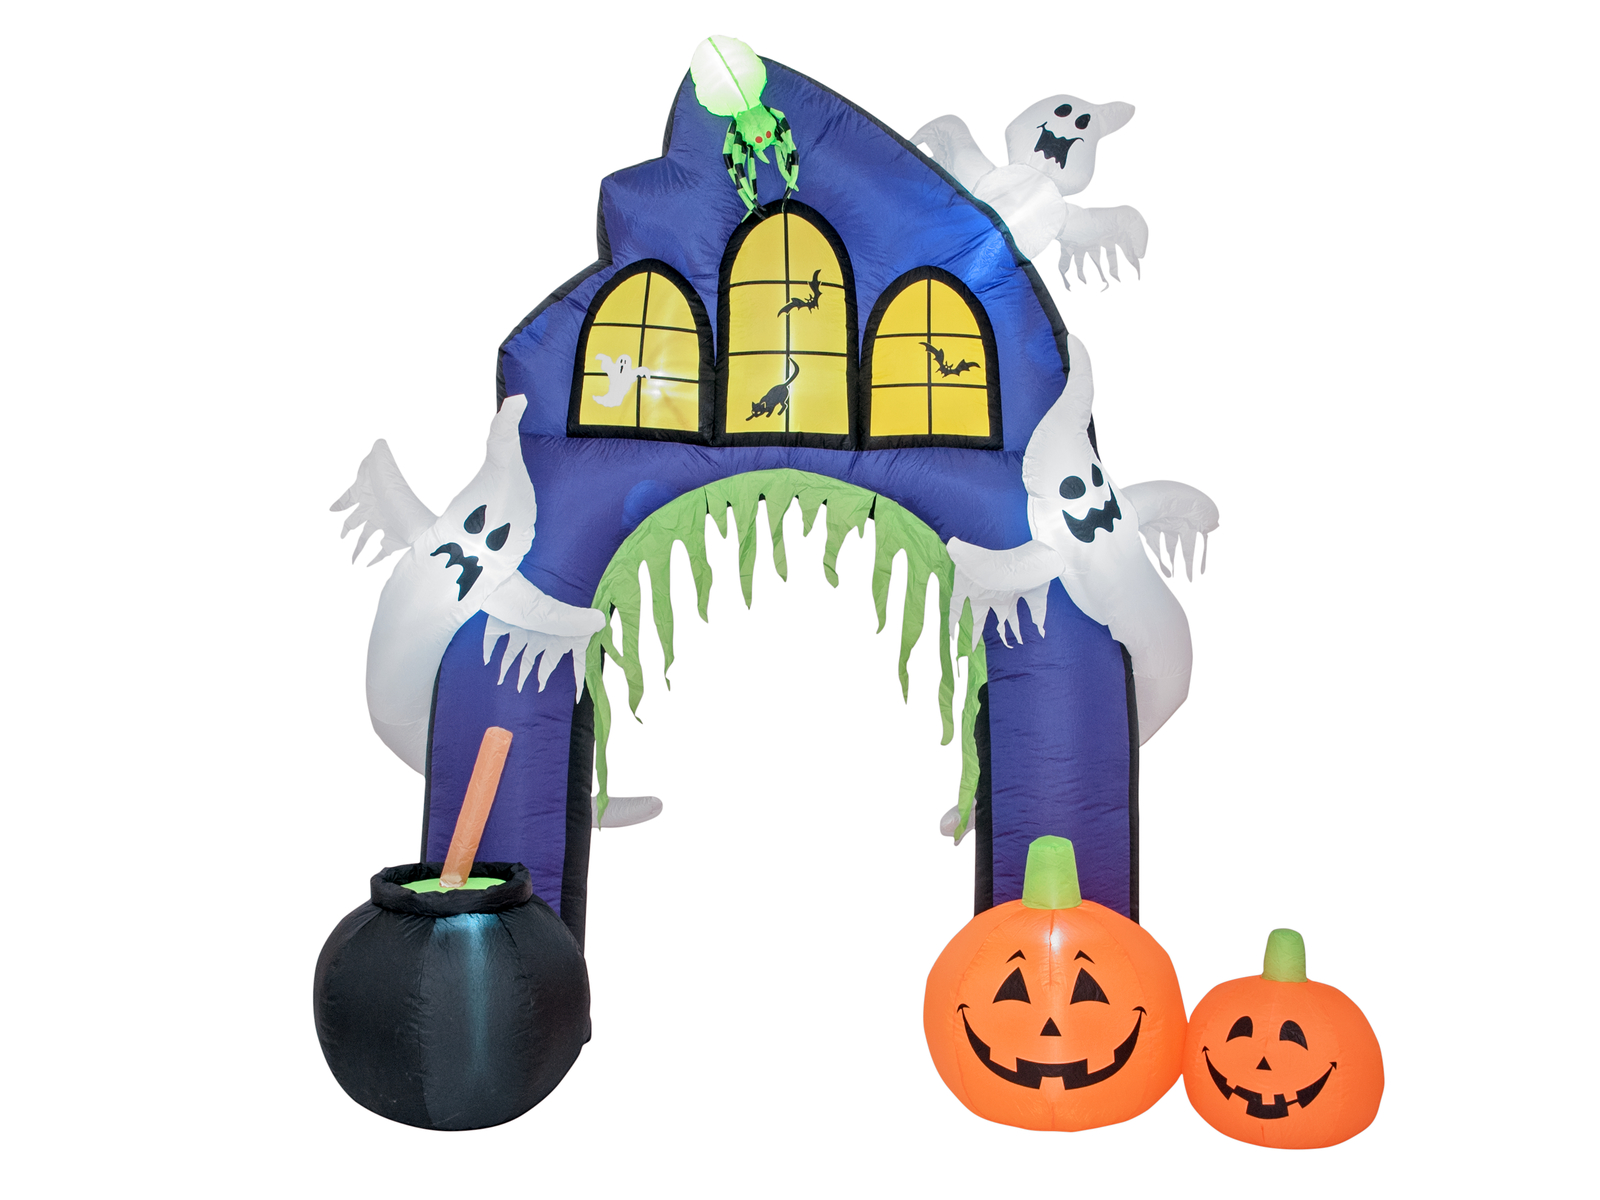 EUROPALMS Gonfiabile Figura Haunted House Portale, 270cm